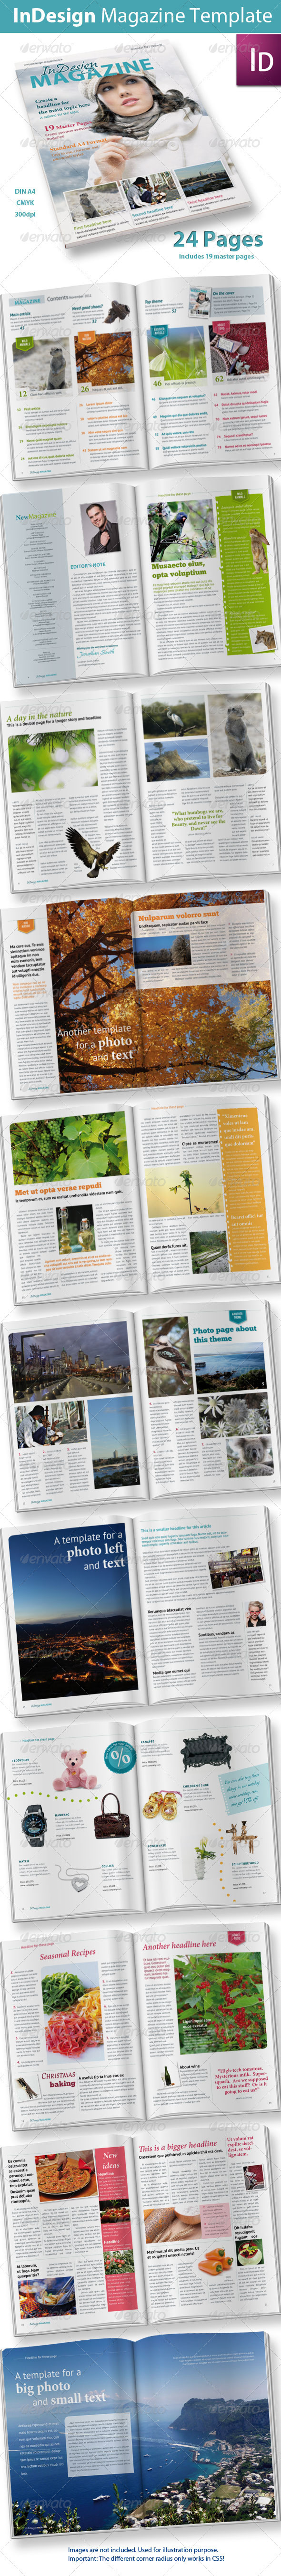 GraphicRiver 24 Pages InDesign Magazine 794556